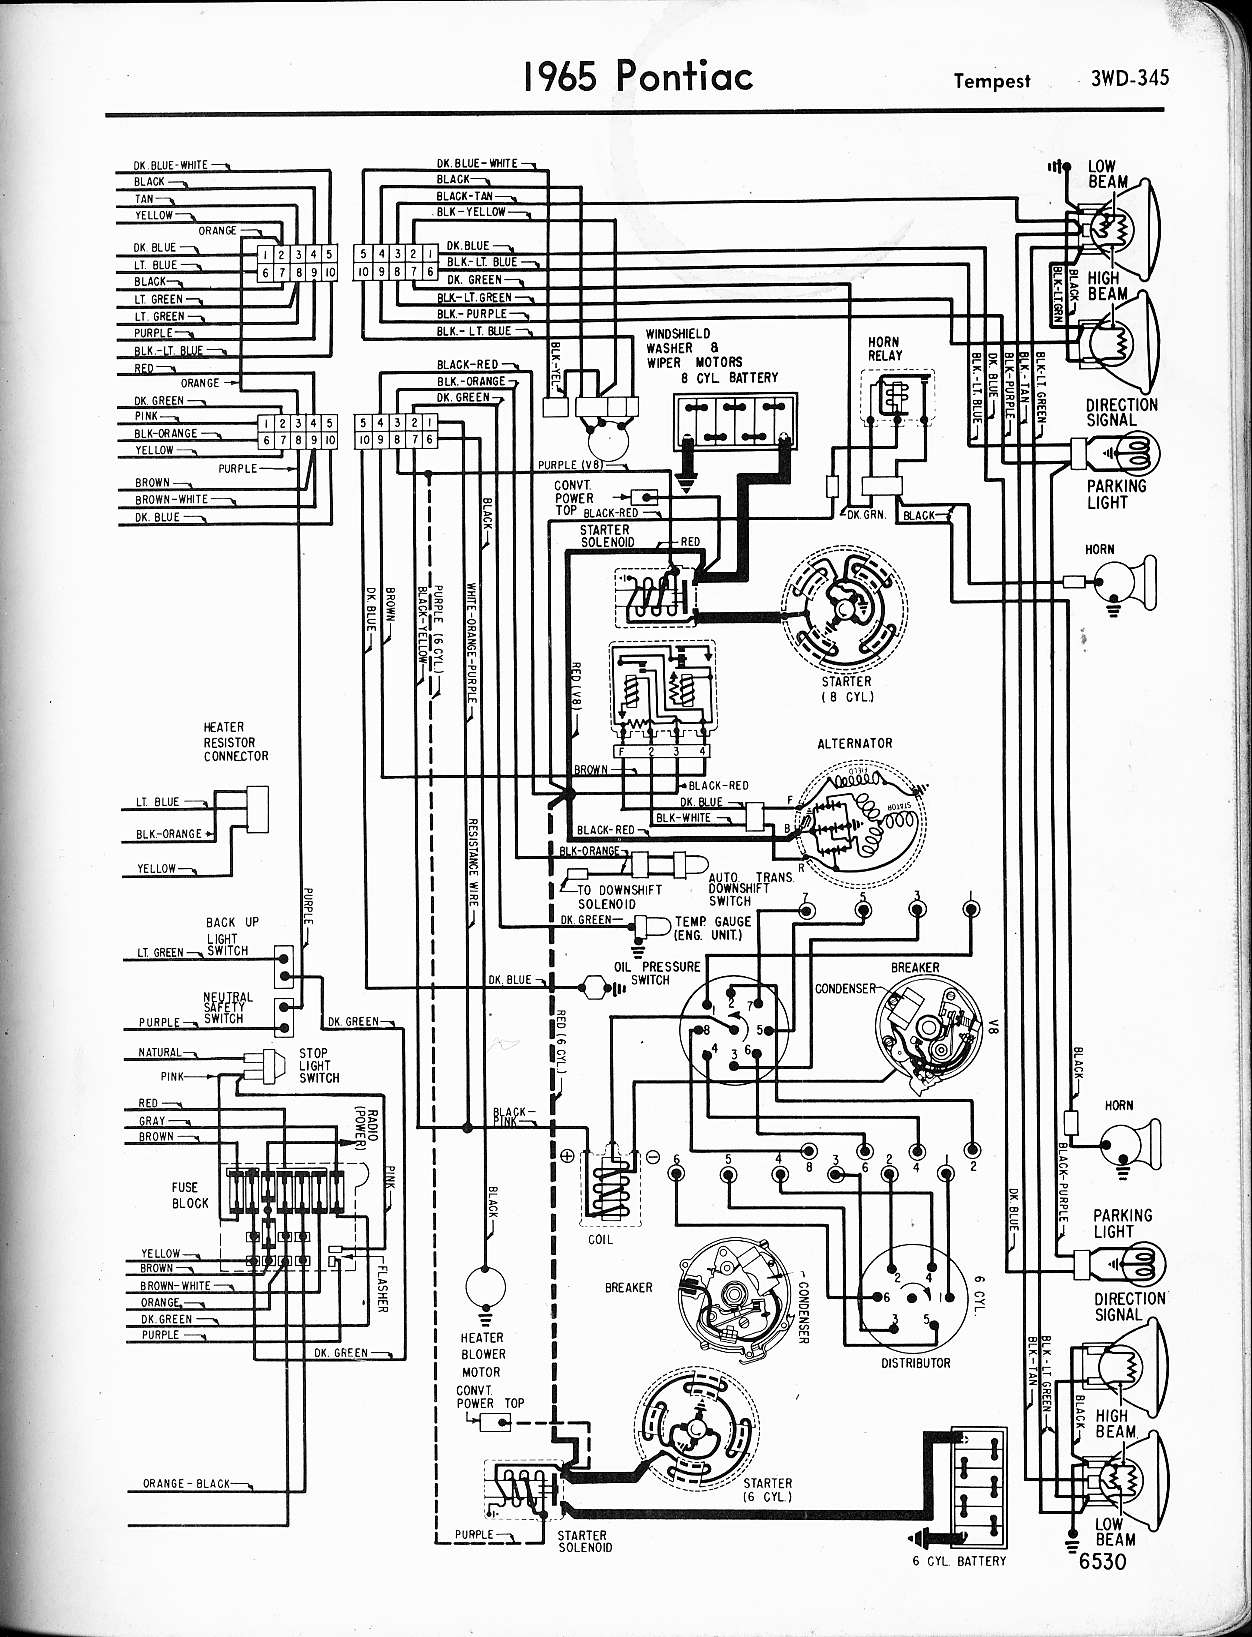 1964 pontiac gto wiring diagram wiring diagrams schematics rh woodmart co Electronic Ballast Wiring Diagram T8 Ballast Wiring Diagram